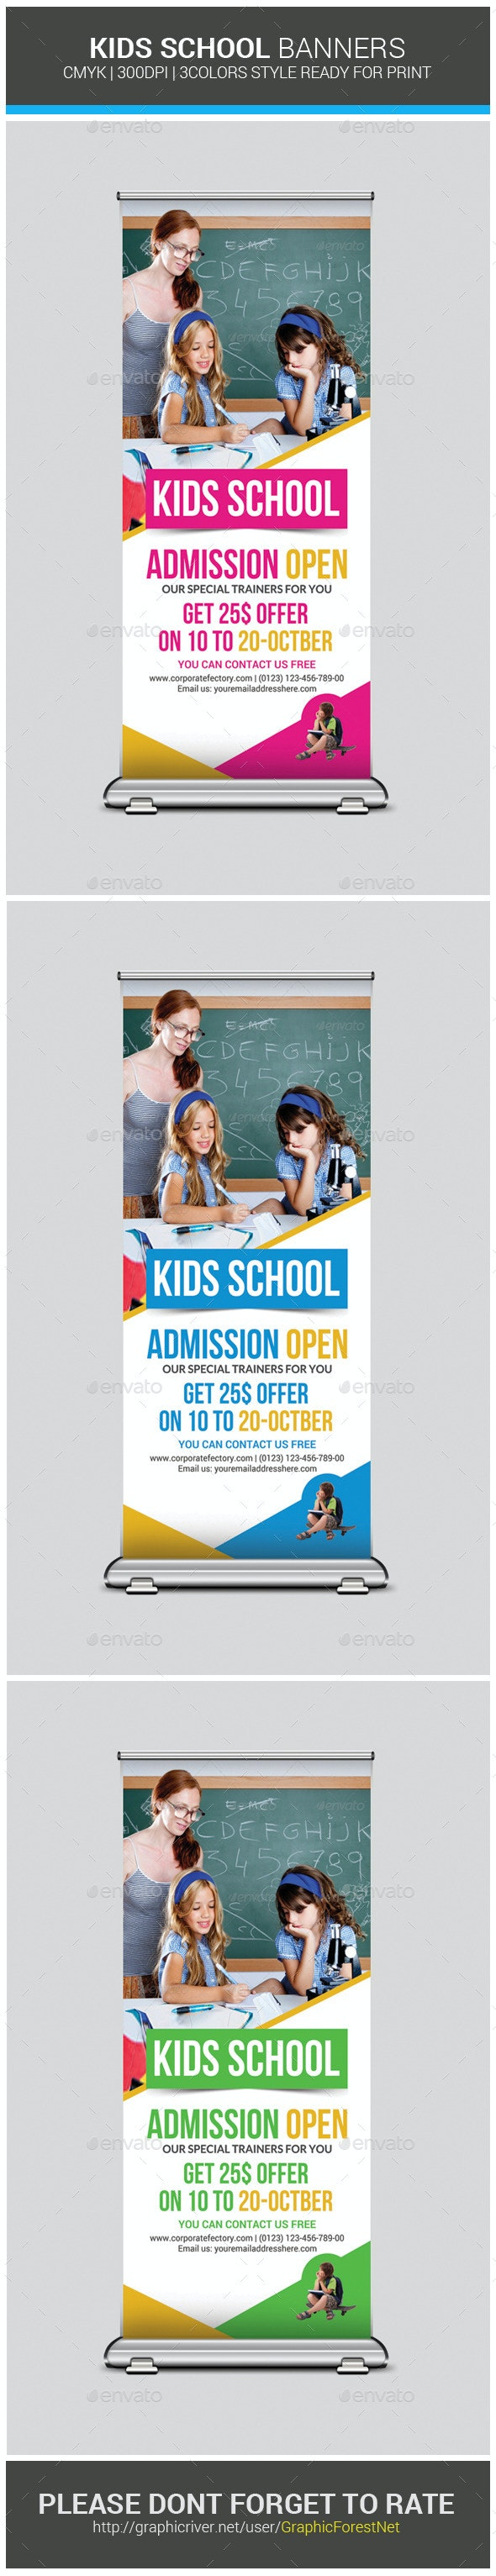 Kids School Rollup Banner Psd Template - Signage Print Templates